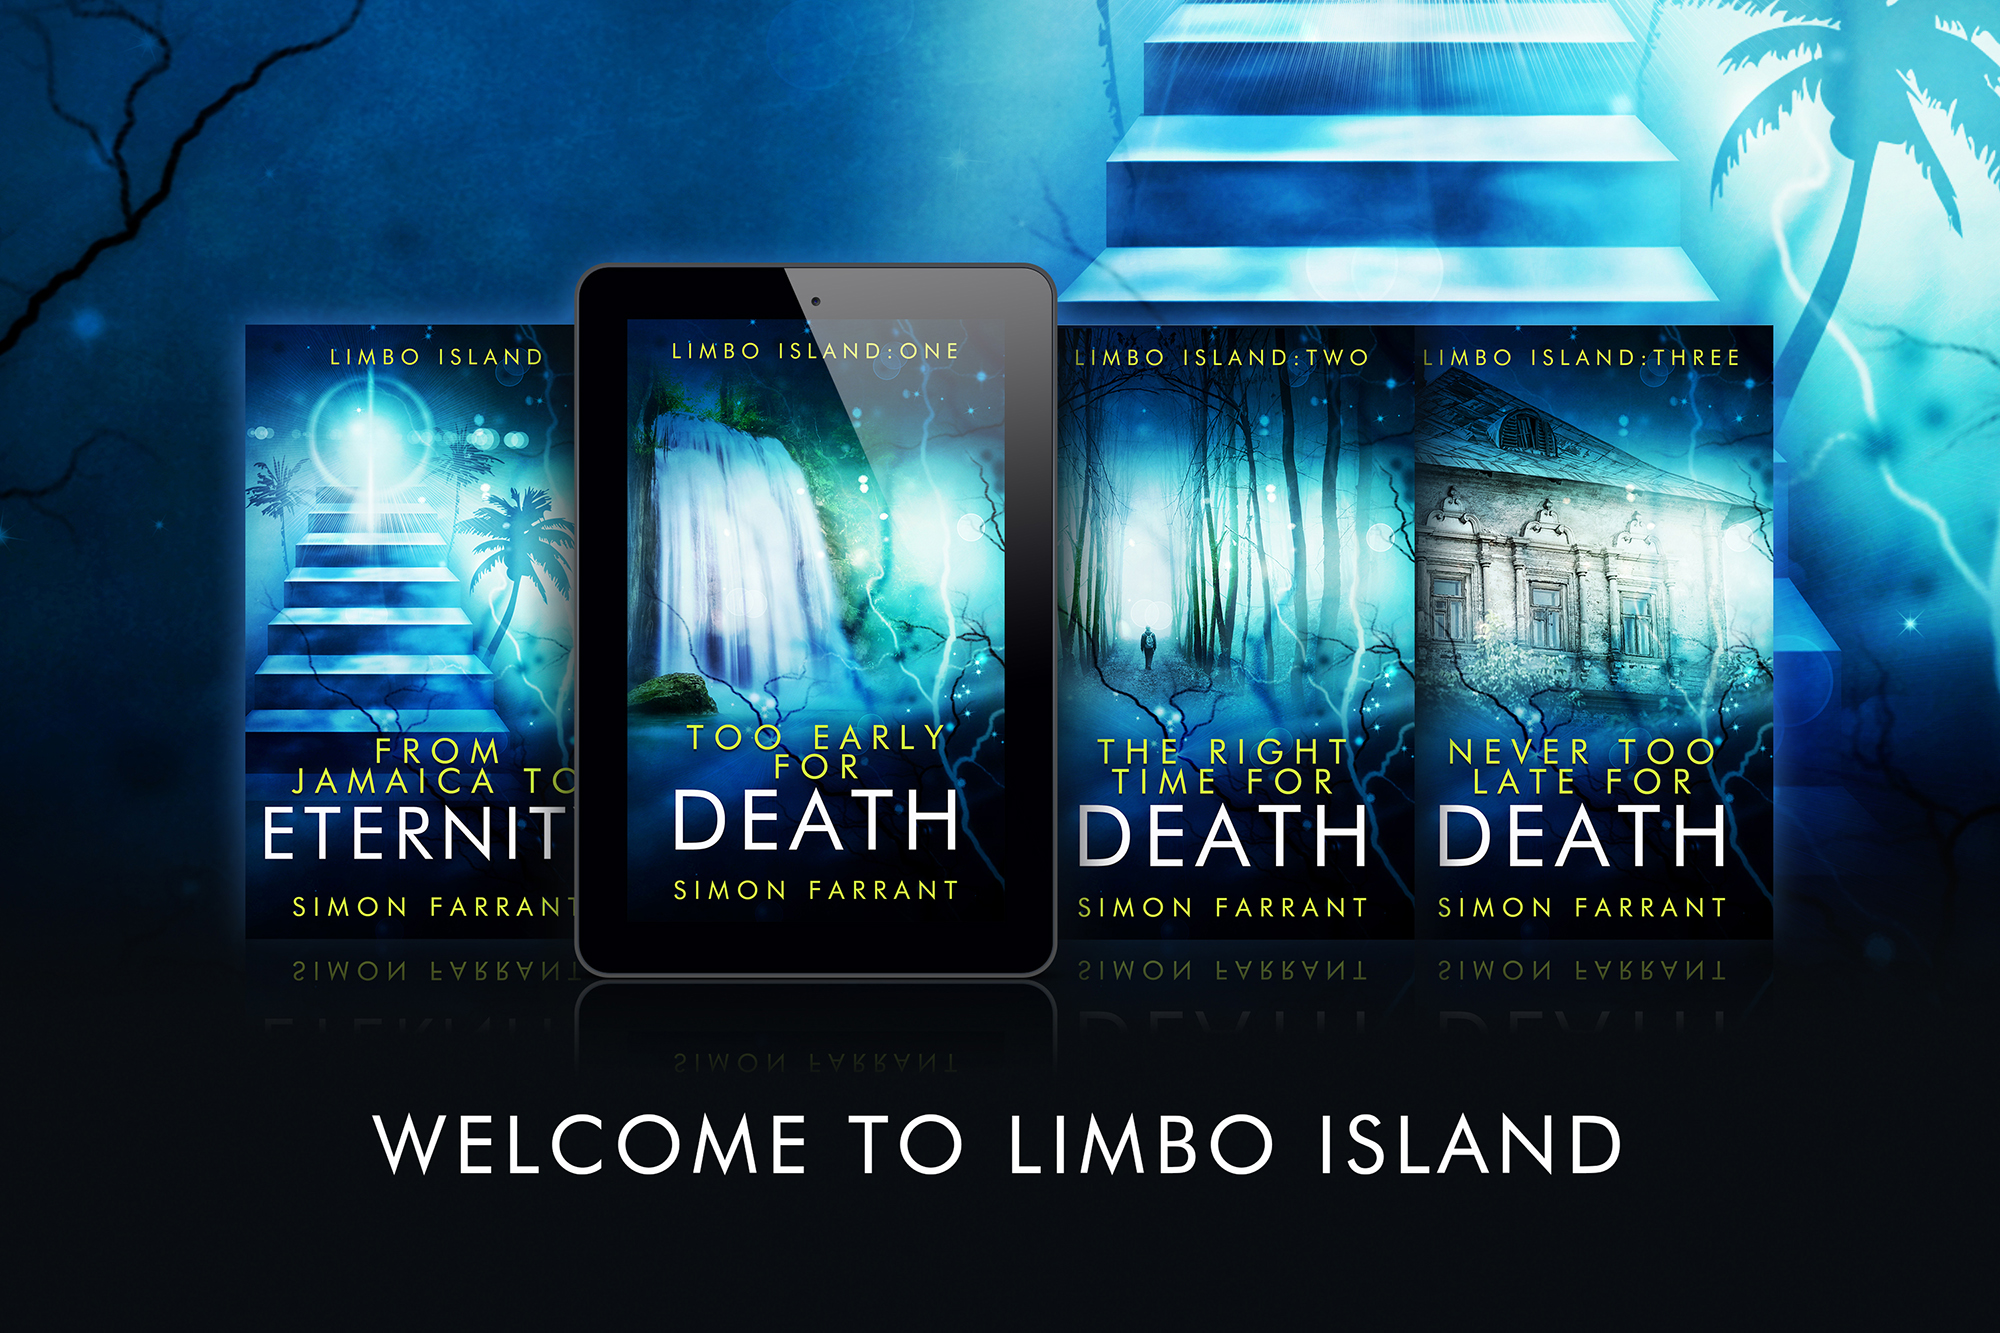 The Limbo Island trilogy is an all new series! It is in Kindle Unlimited too.  It is a contemporary fantasy, mystery, take on the afterlife.  From Jamaica to Eternity is a short story introducing the enigmatic character, The curator. It is available to buy now.   Amazon UK    Amazon US   Too Early for Death is available to order. The release date is May 5th.  Blurb:   Death can take you to the most unexpected places.   Damien Lennon finds himself on a mysterious island… and dead.  He has more questions than answers. Why? Where? How? What next?  In a place where forests hide secrets and a leader rules with an iron fist, can Damien change his destiny?  'Too Early for Death' starts a journey through the Limbo Island trilogy, a series that unravels a story of life after death, hierarchy, tragedy, jealousy and eternal love. A heartbreaking yet heartwarming adventure awaits.   Amazon UK    Amazon US